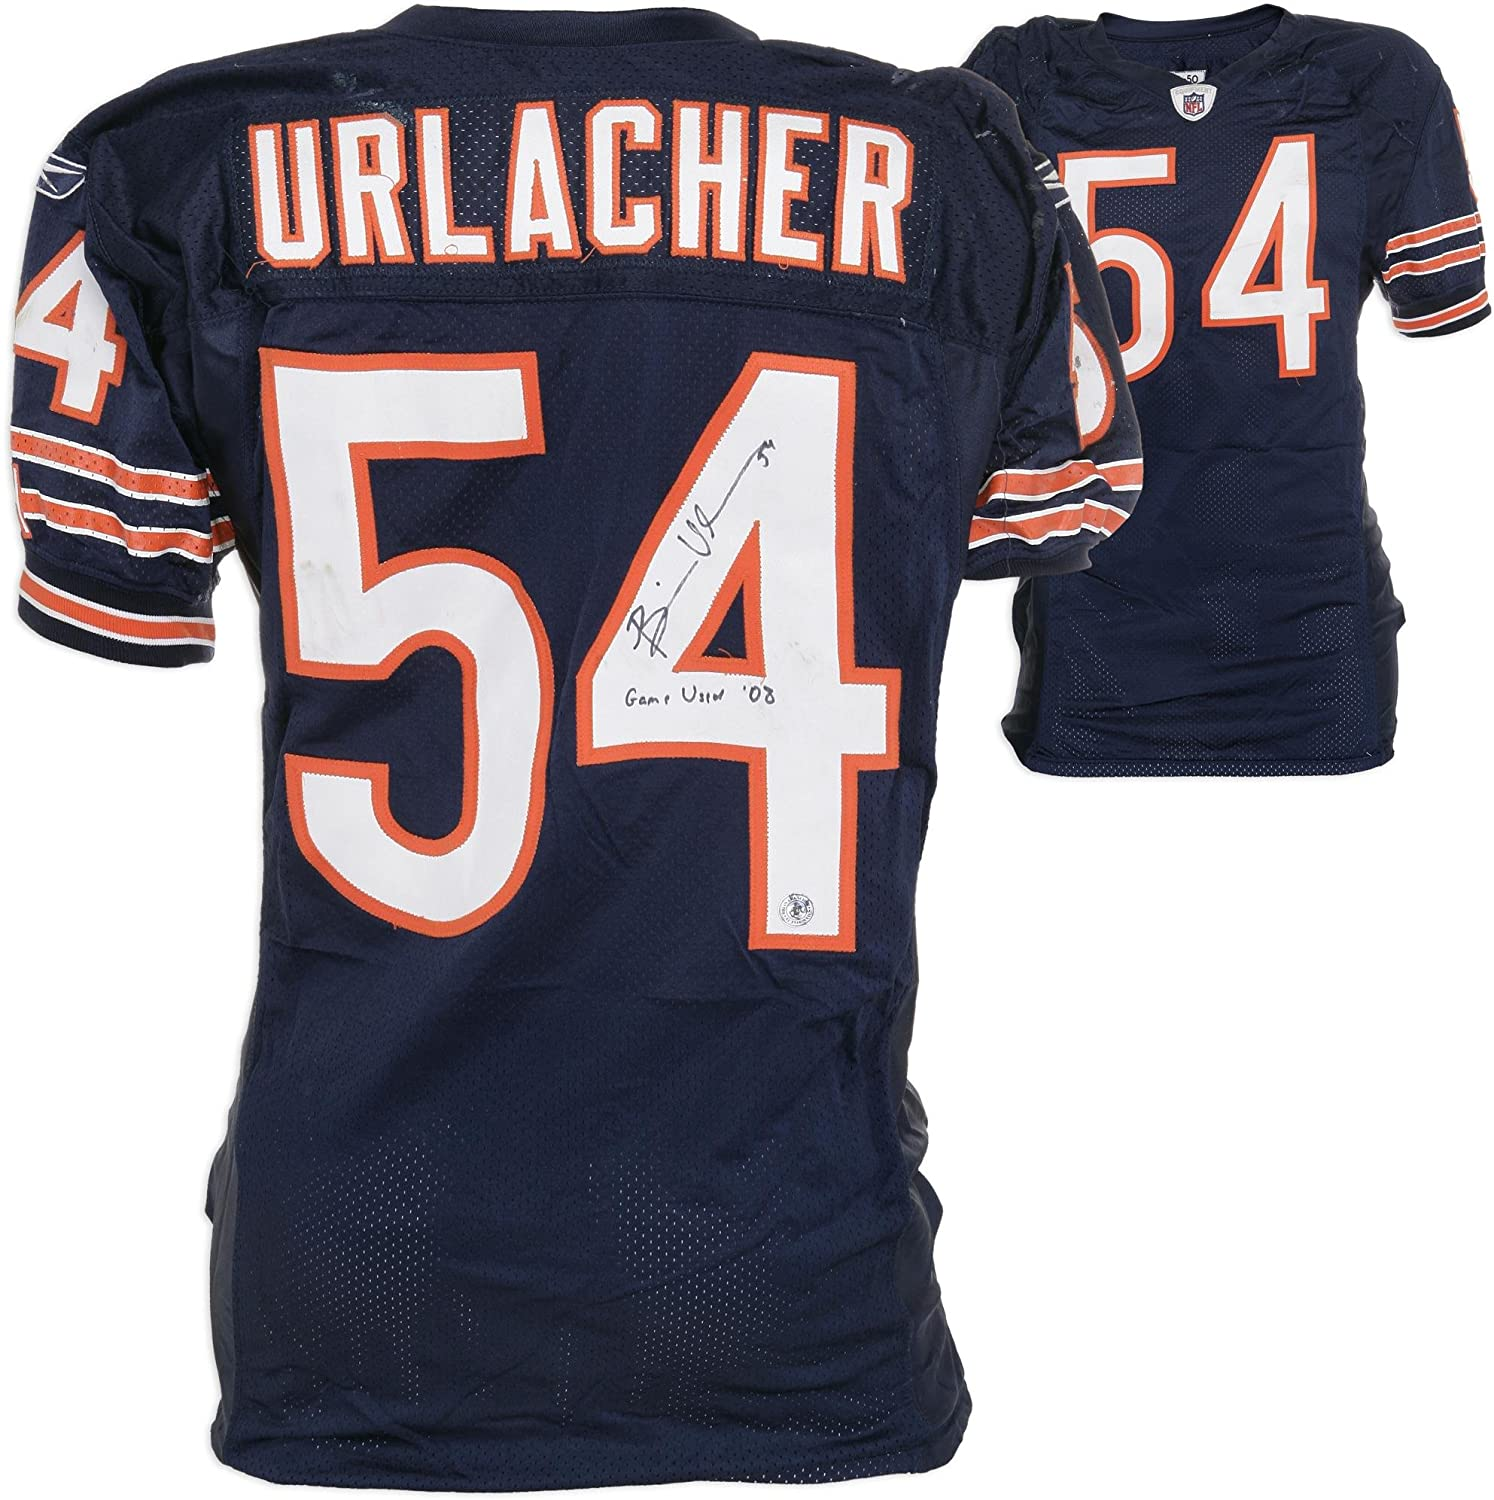 Amazon.com  Chicago Bears Brian Urlacher Reebok Game-Used Autographed Jersey  - Fanatics Authentic Certified - NFL Autographed Game Used Jerseys  Sports  ... b4fda047f